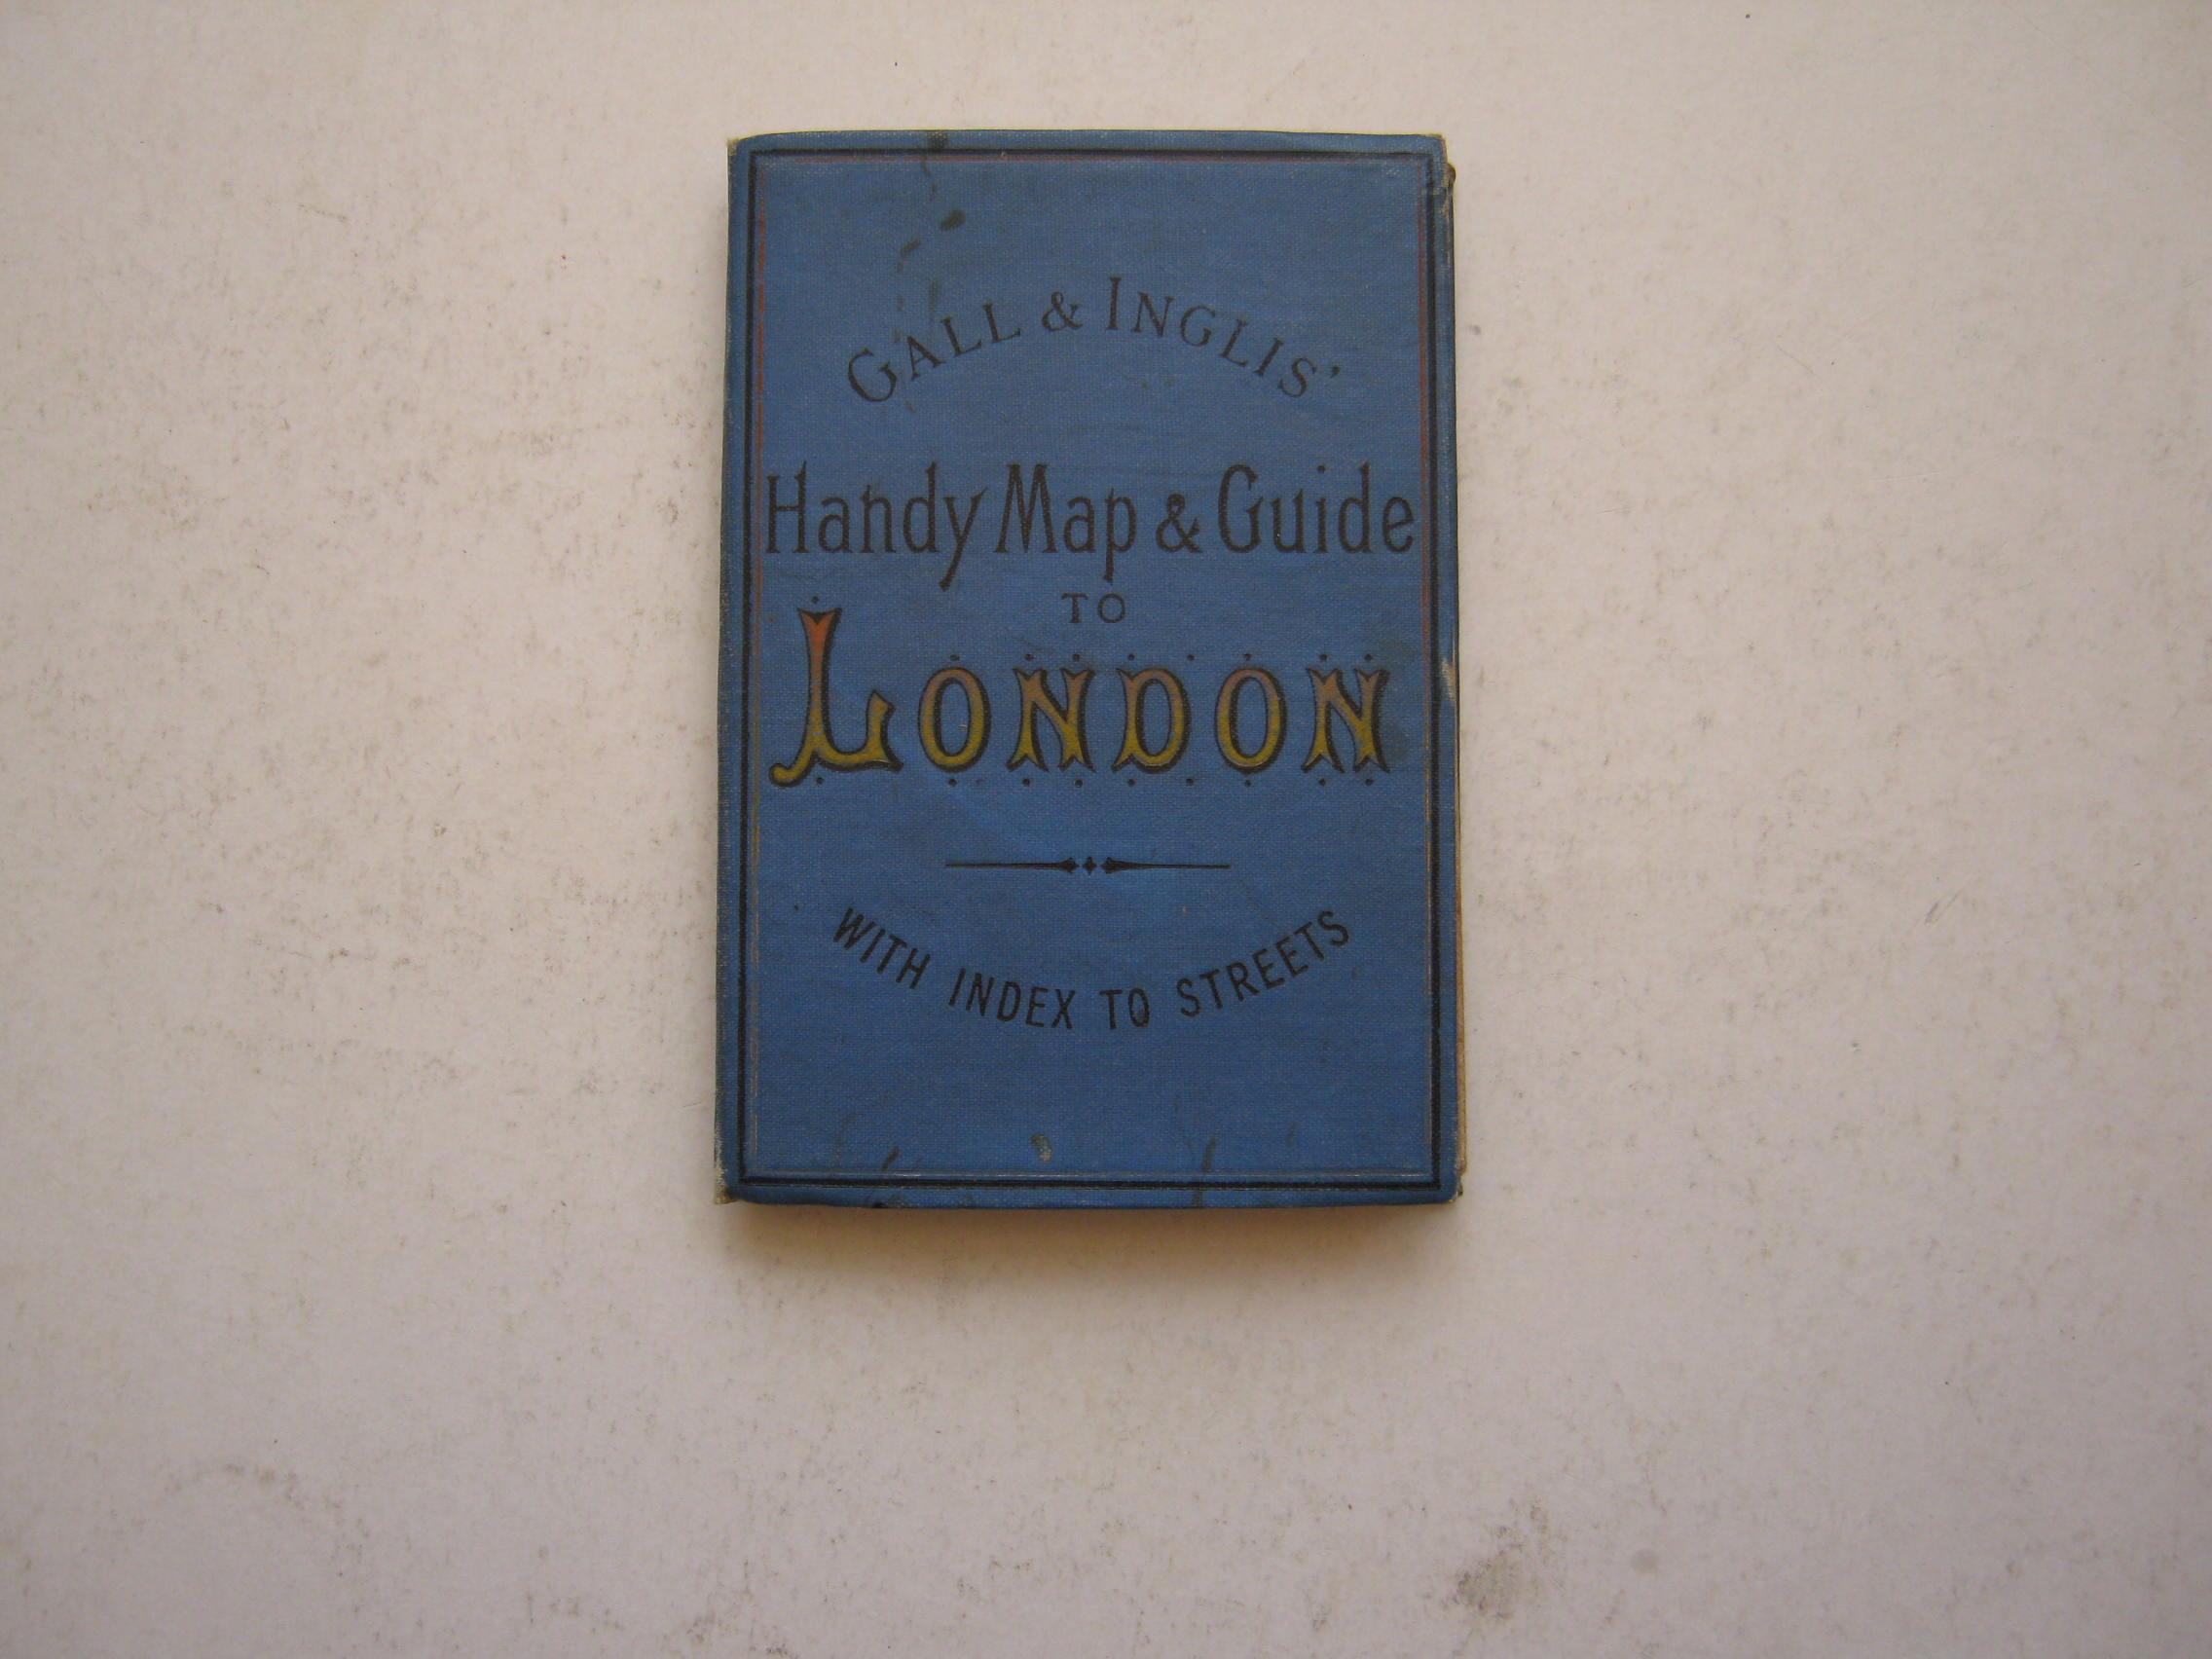 Image for Cruchley's Handy Map of London, :With Index to Streets, 3 3/4 Inches to One Mile